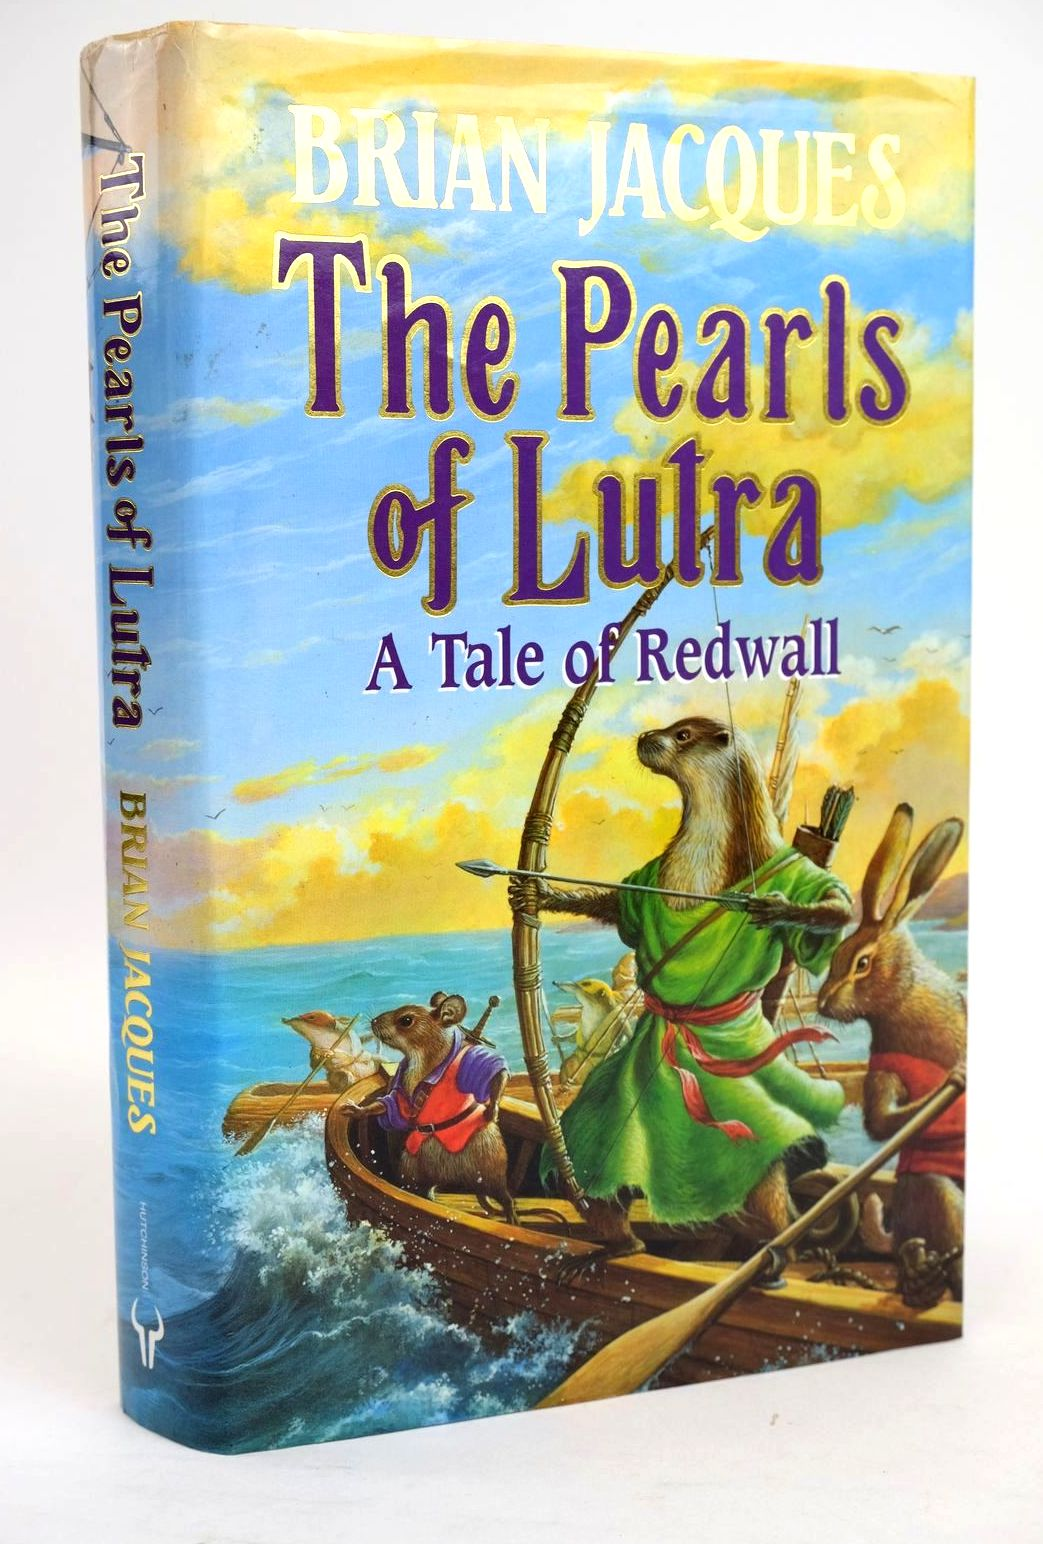 Photo of THE PEARLS OF LUTRA written by Jacques, Brian illustrated by Curless, Allan published by Hutchinson (STOCK CODE: 1319386)  for sale by Stella & Rose's Books